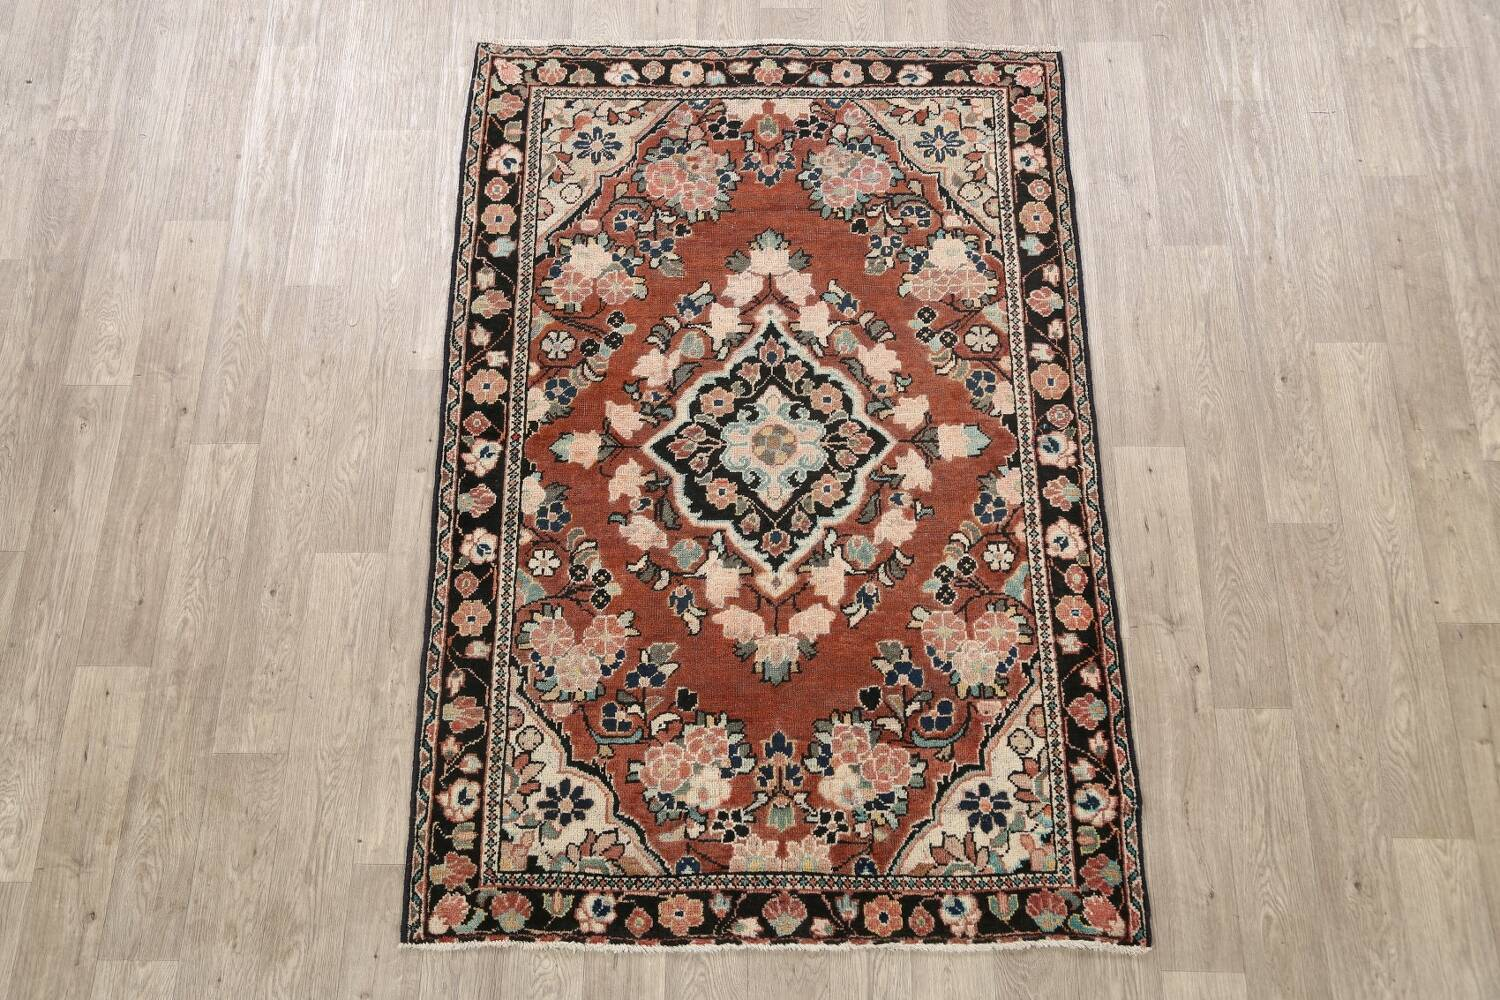 Antique Floral Mahal Persian Area Rug 4x6 image 2